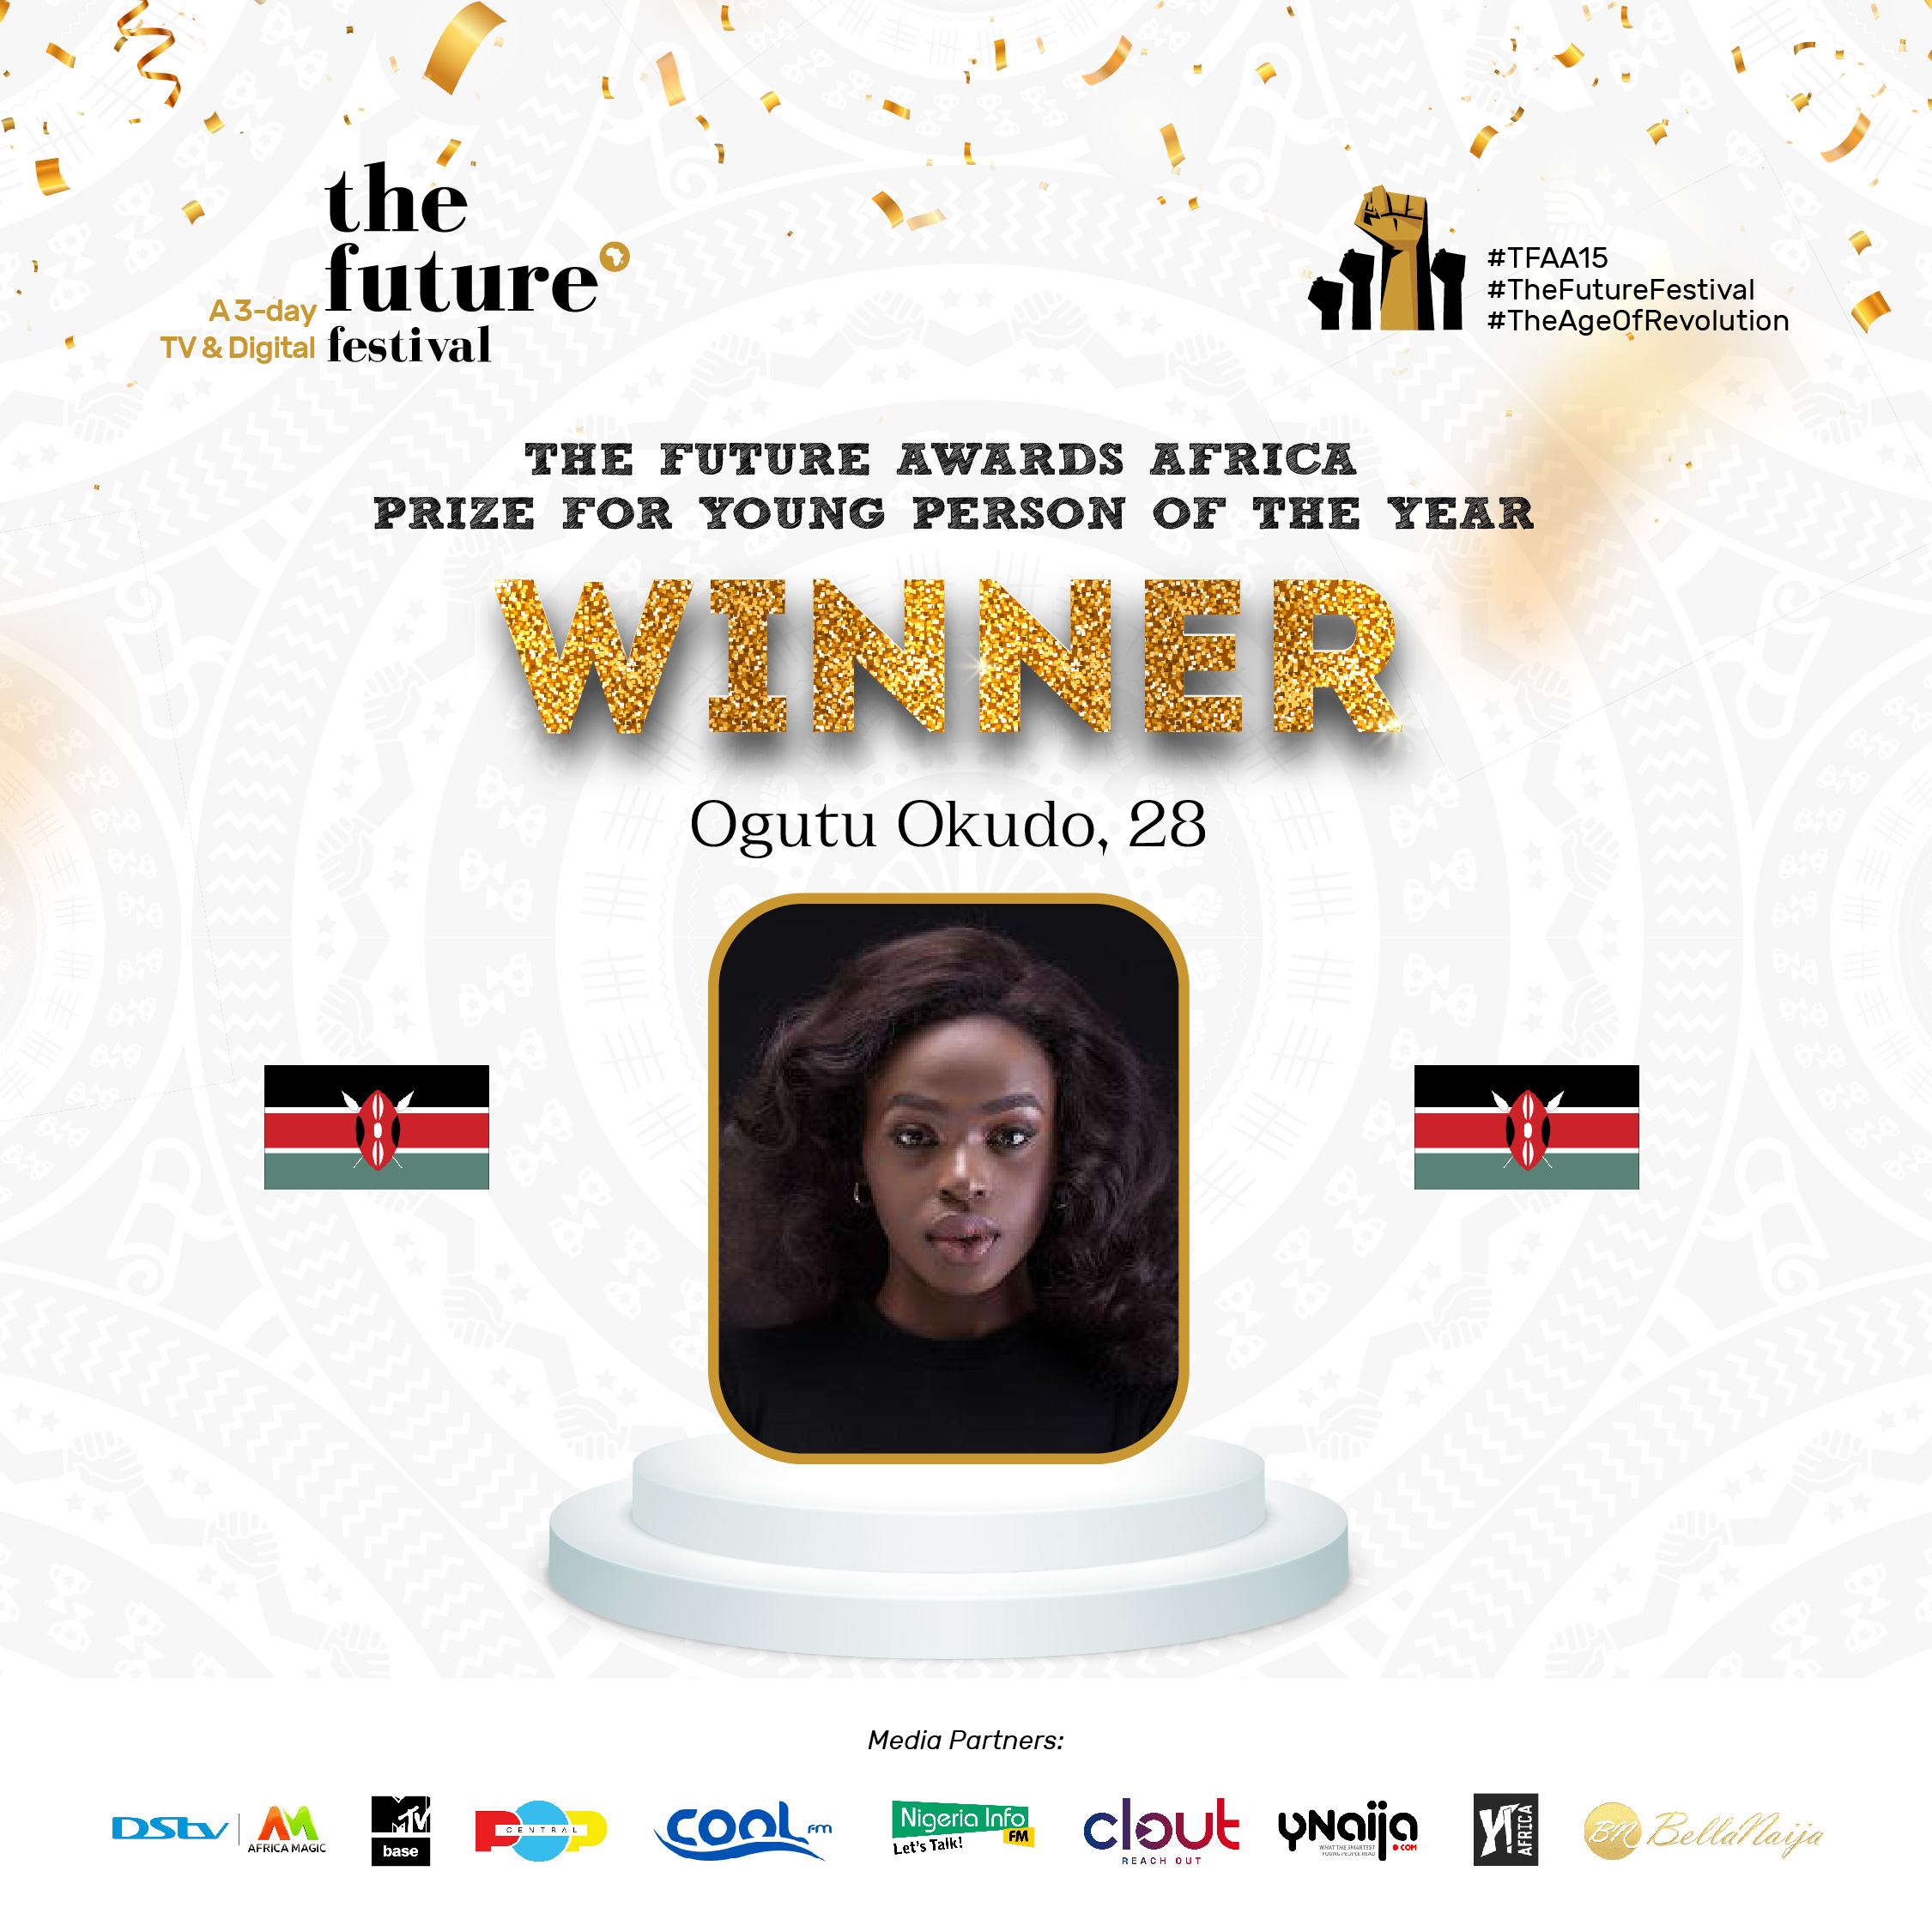 """""""Woman on a mission to disrupt the energy sector"""", Ogutu Okudo emerges winner of the coveted Young Person of the Year Prize at The Future Awards Africa 2020"""